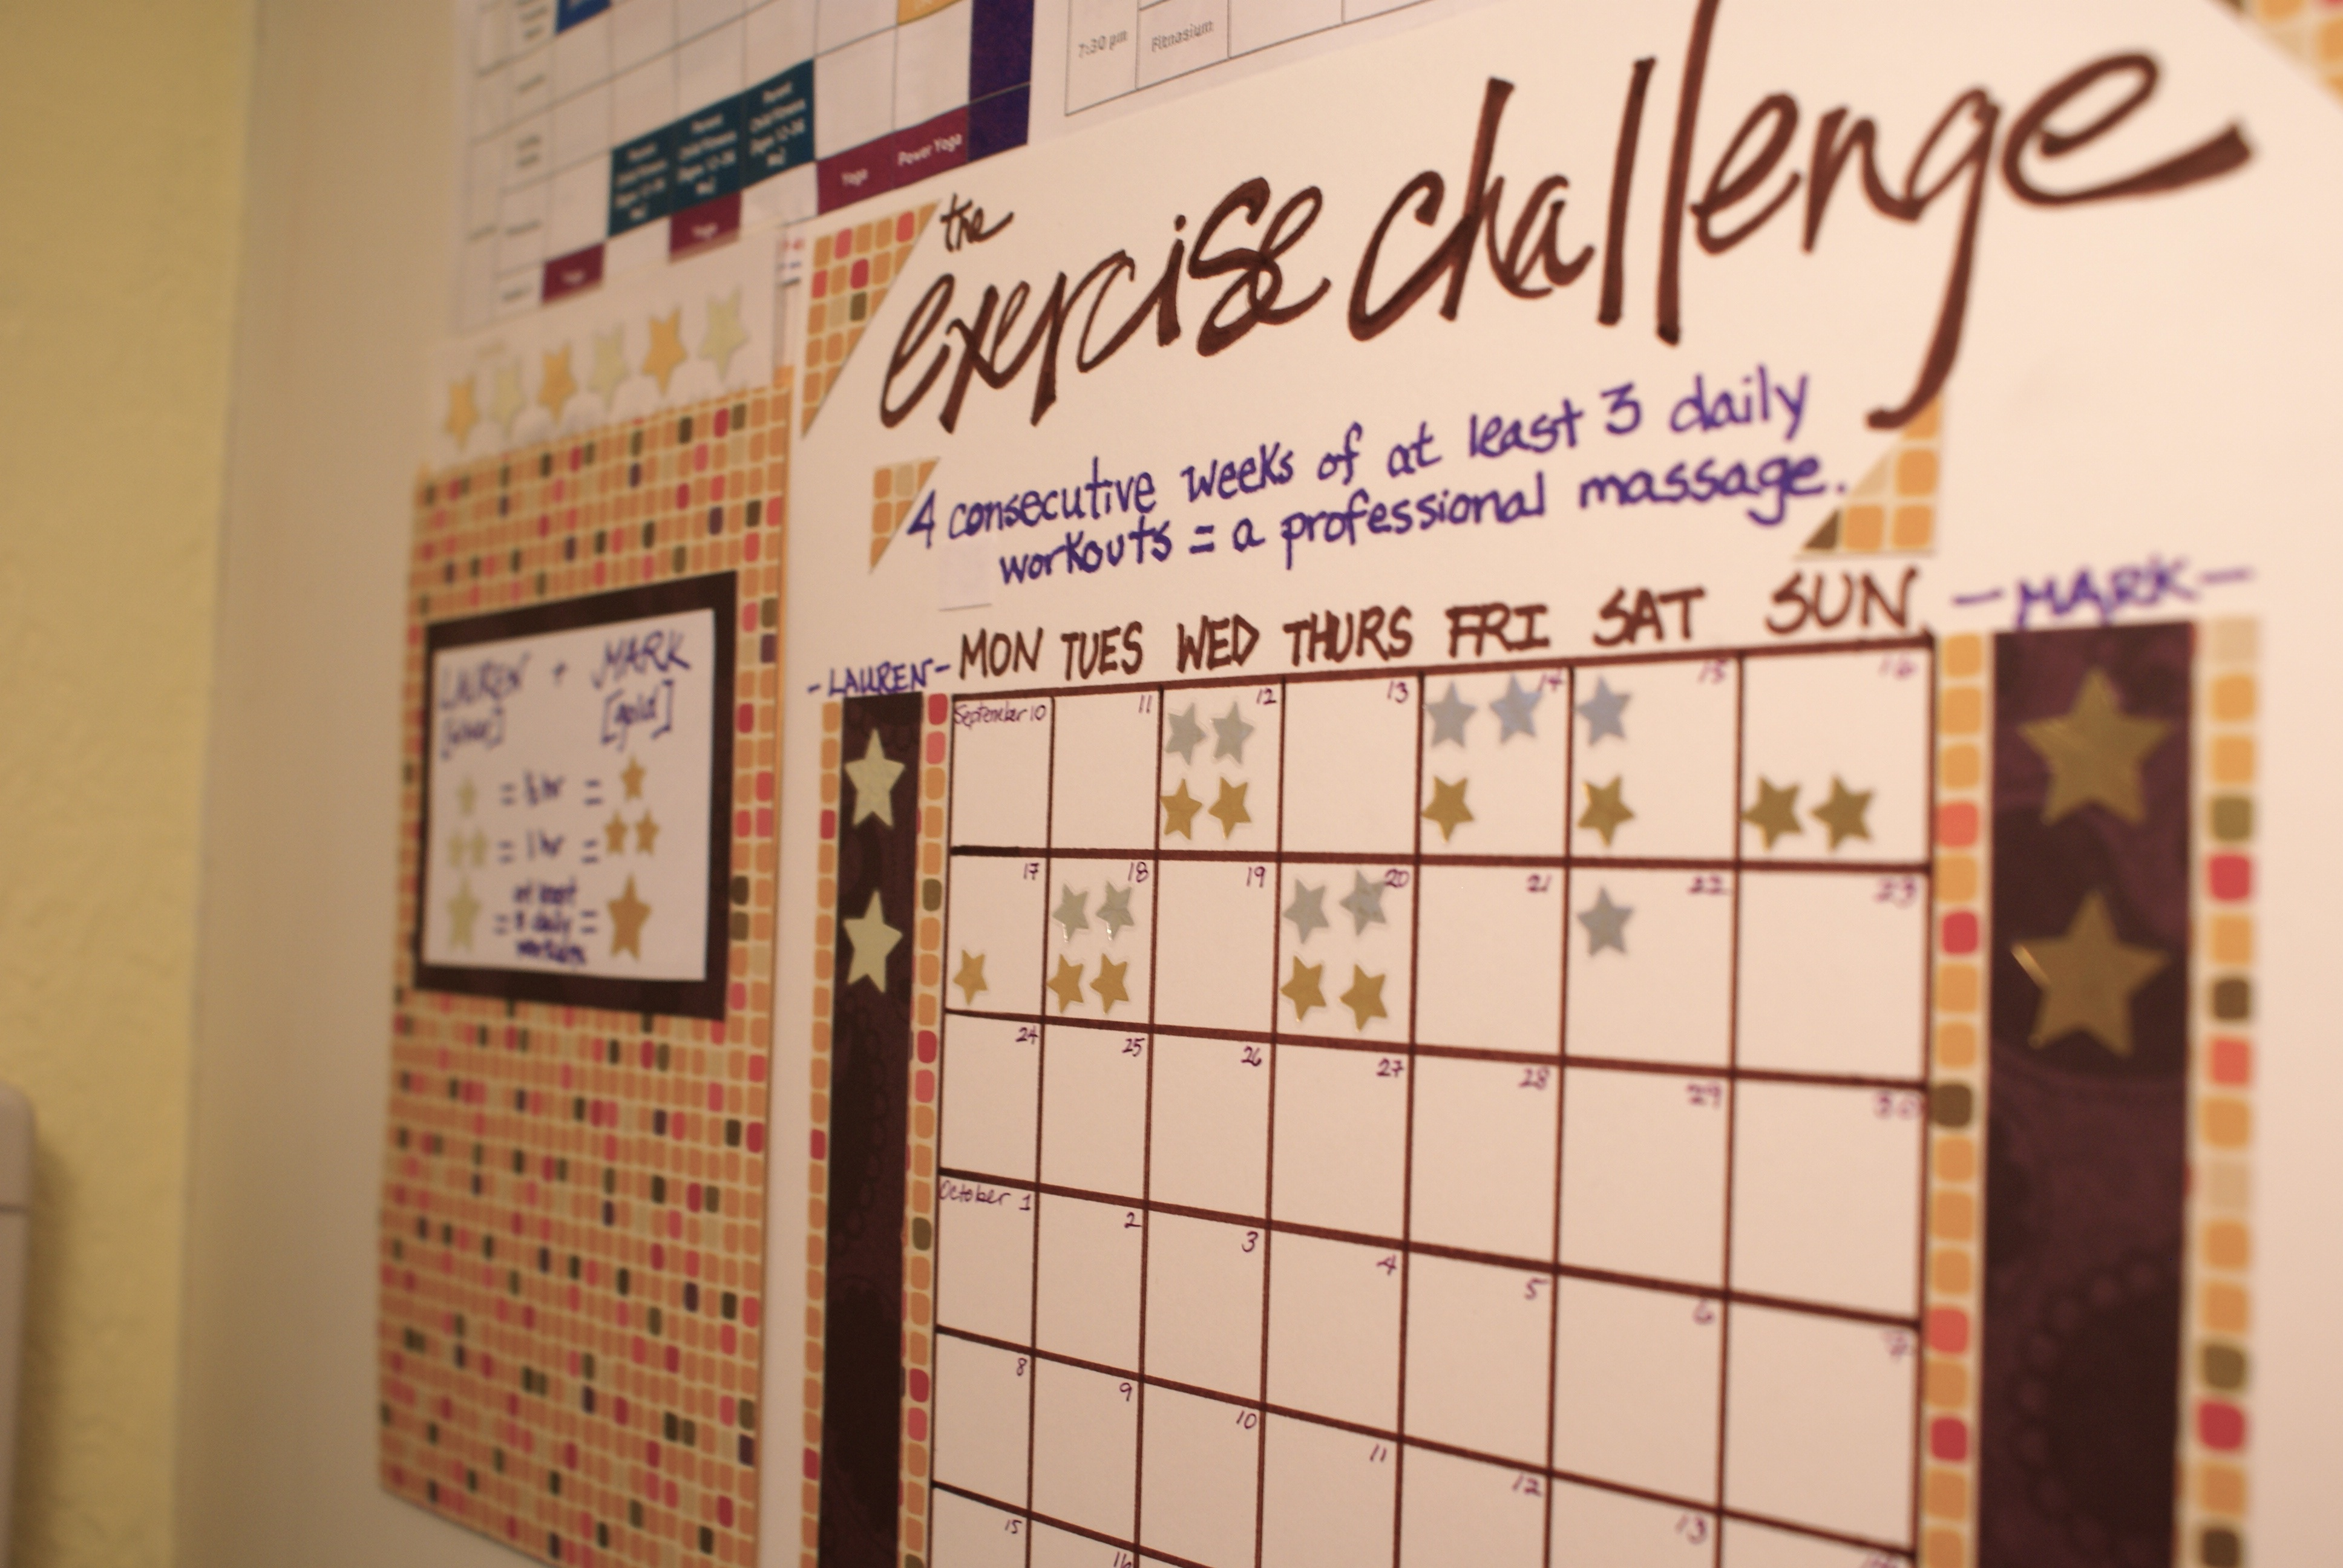 Exercise Challenge Chart with stars to track progress